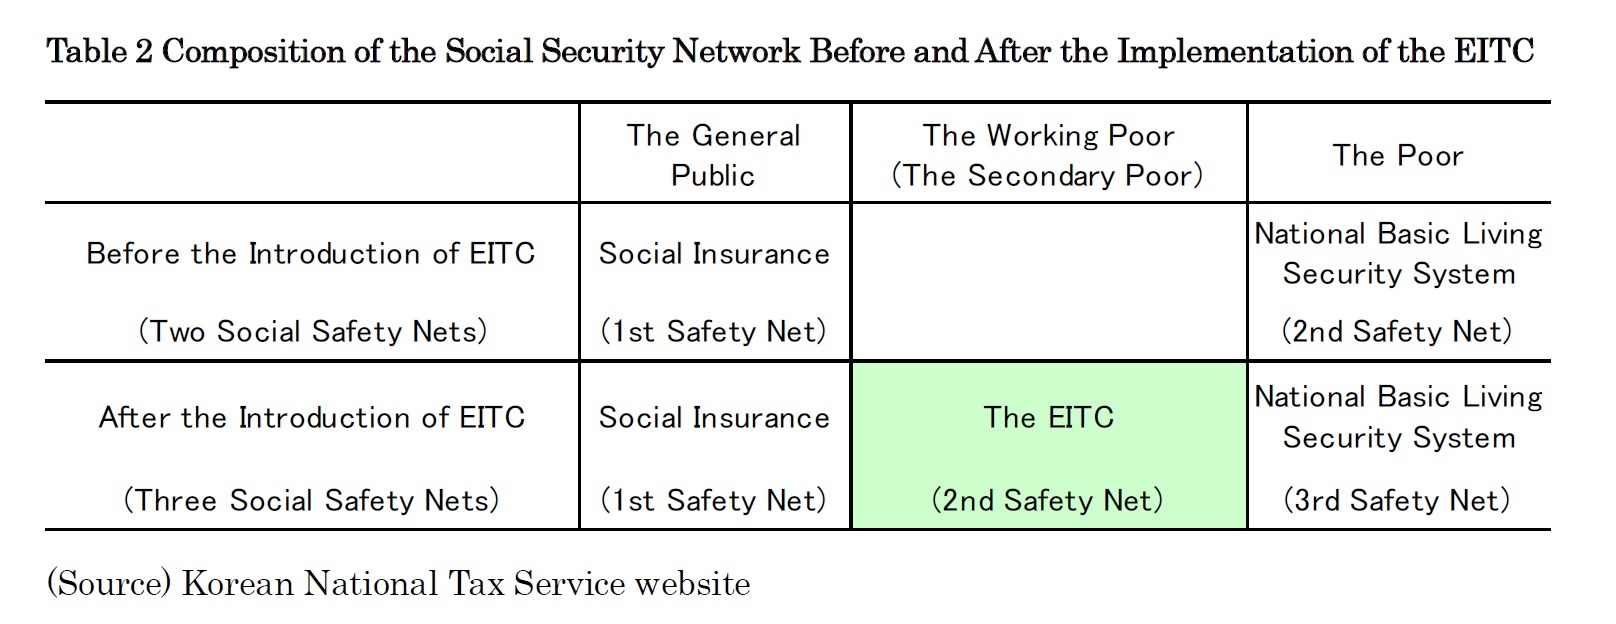 Table 2 Composition of the Social Security Network Before and After the Implementation of the EITC